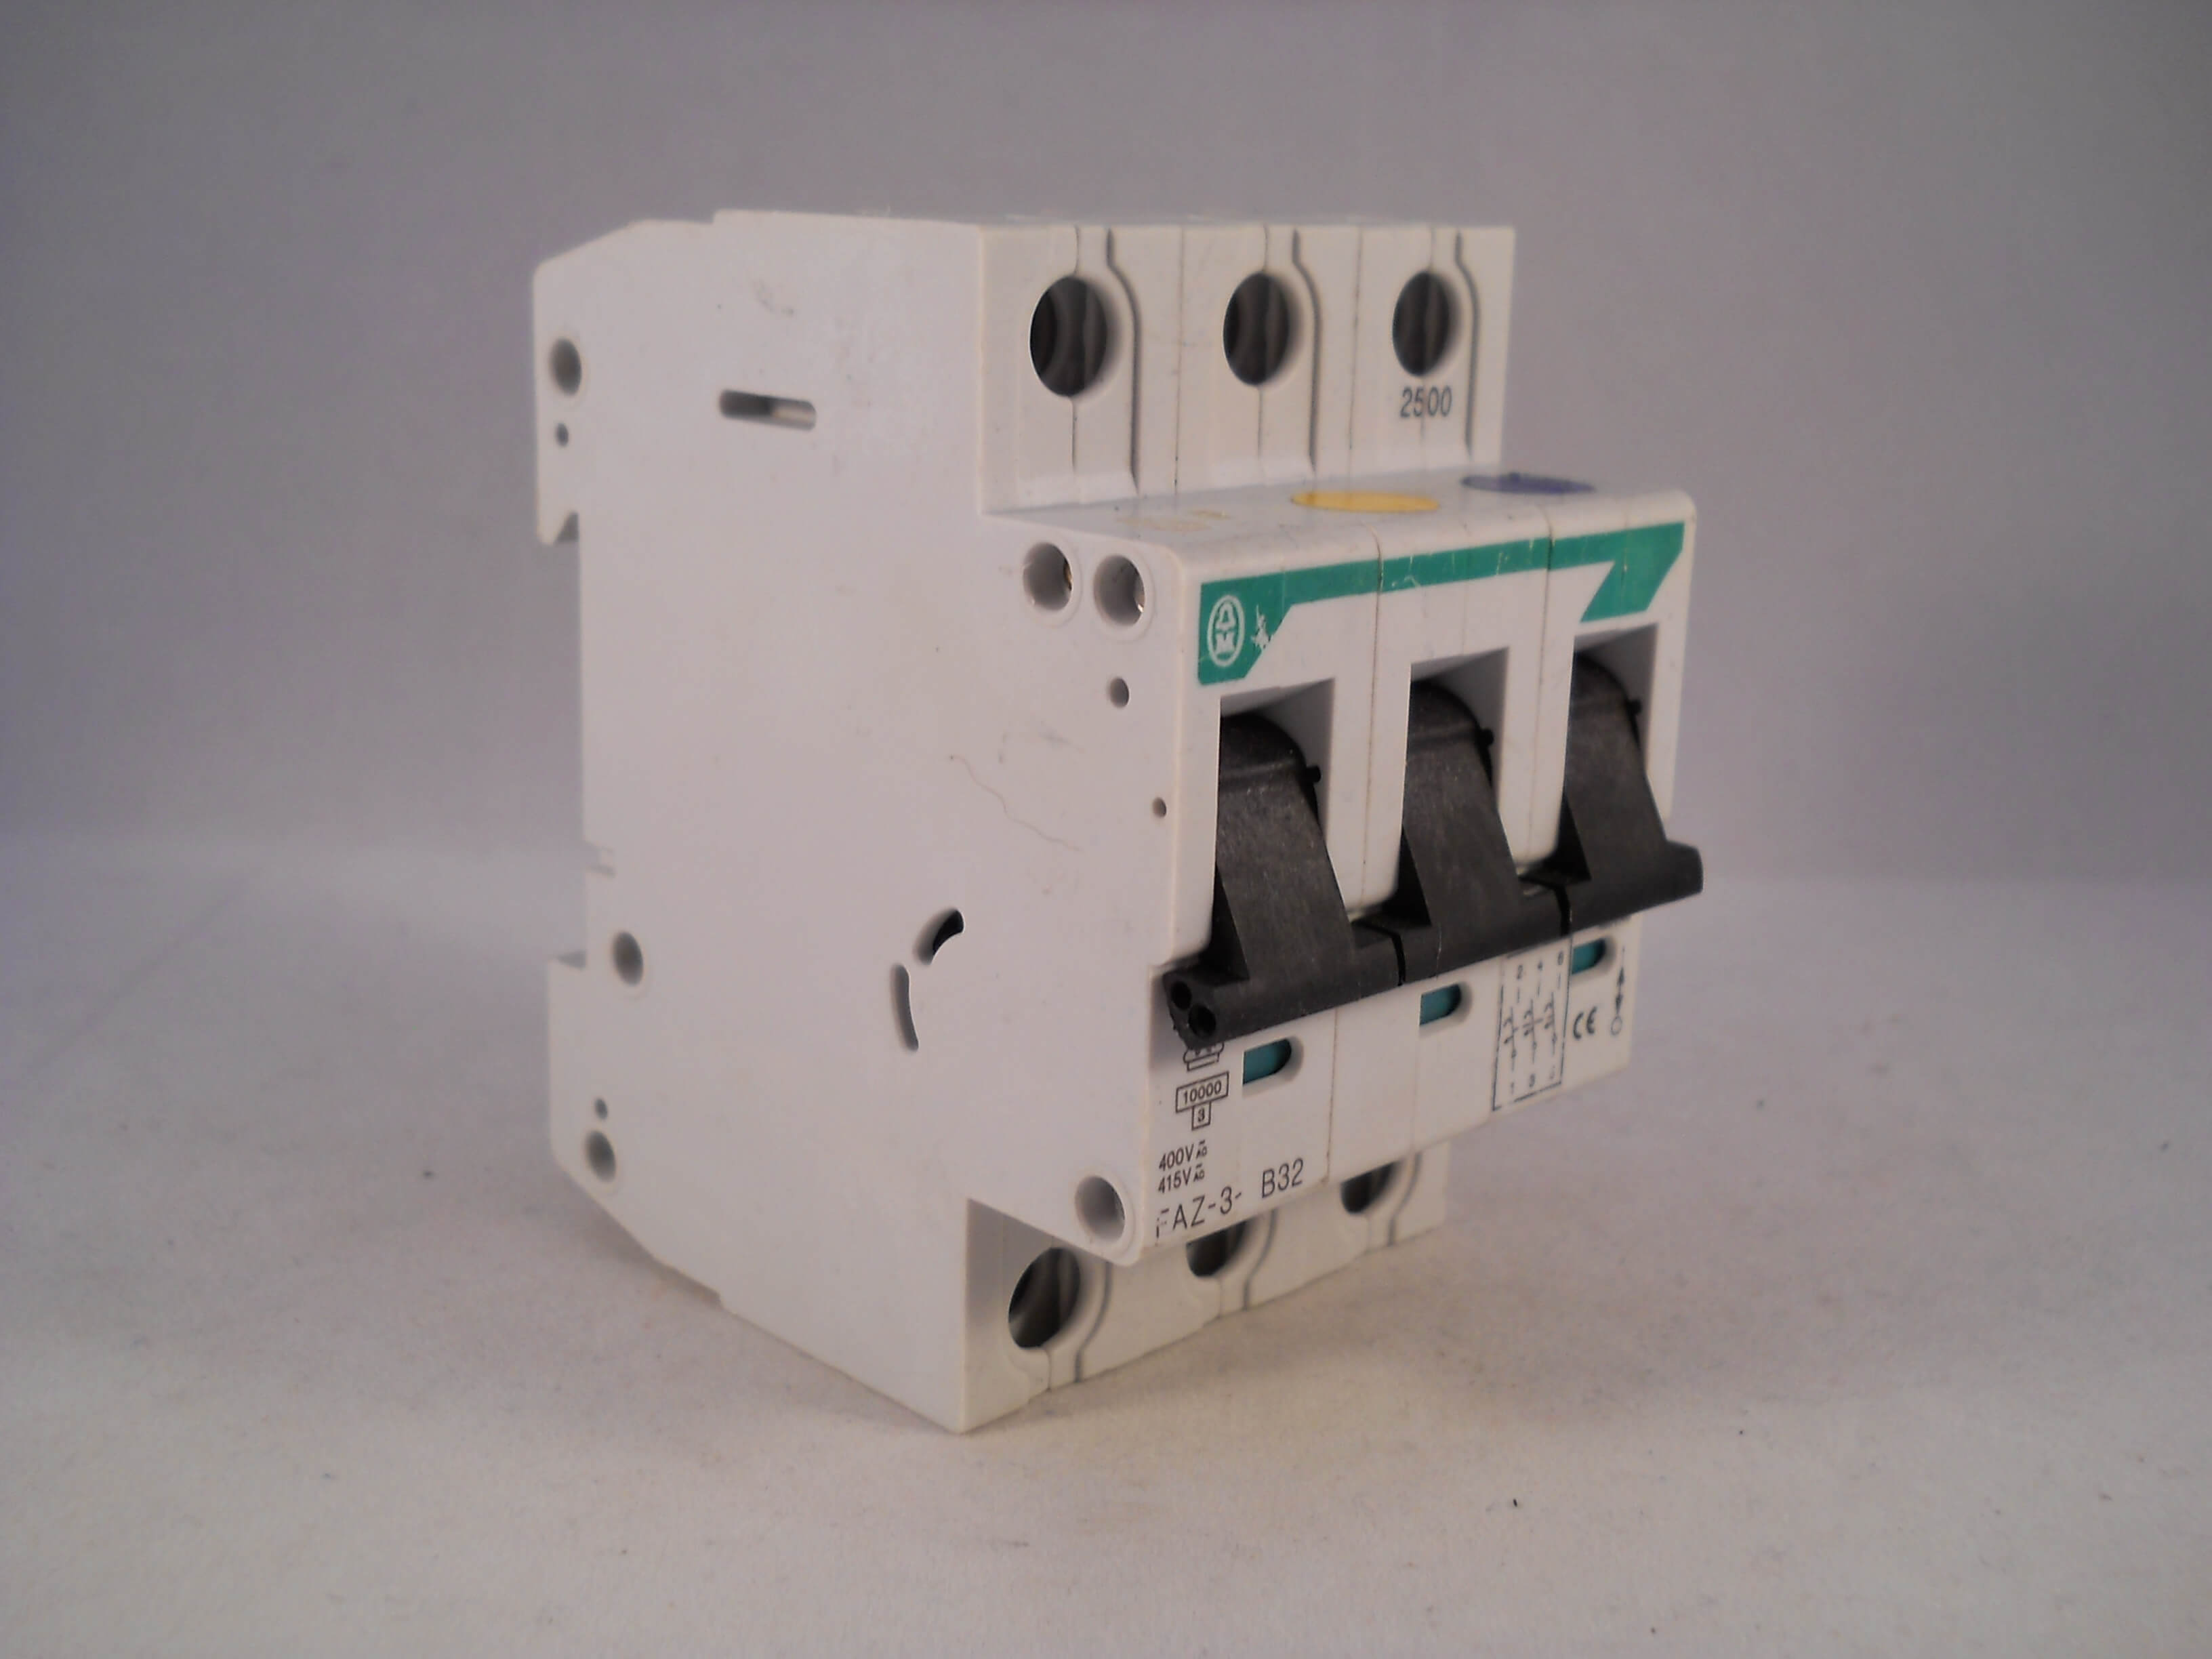 Mcbs Products Page 19 Of 72 Willrose Electrical Discontinued Faz Miniature Circuit Breakers Obsolete